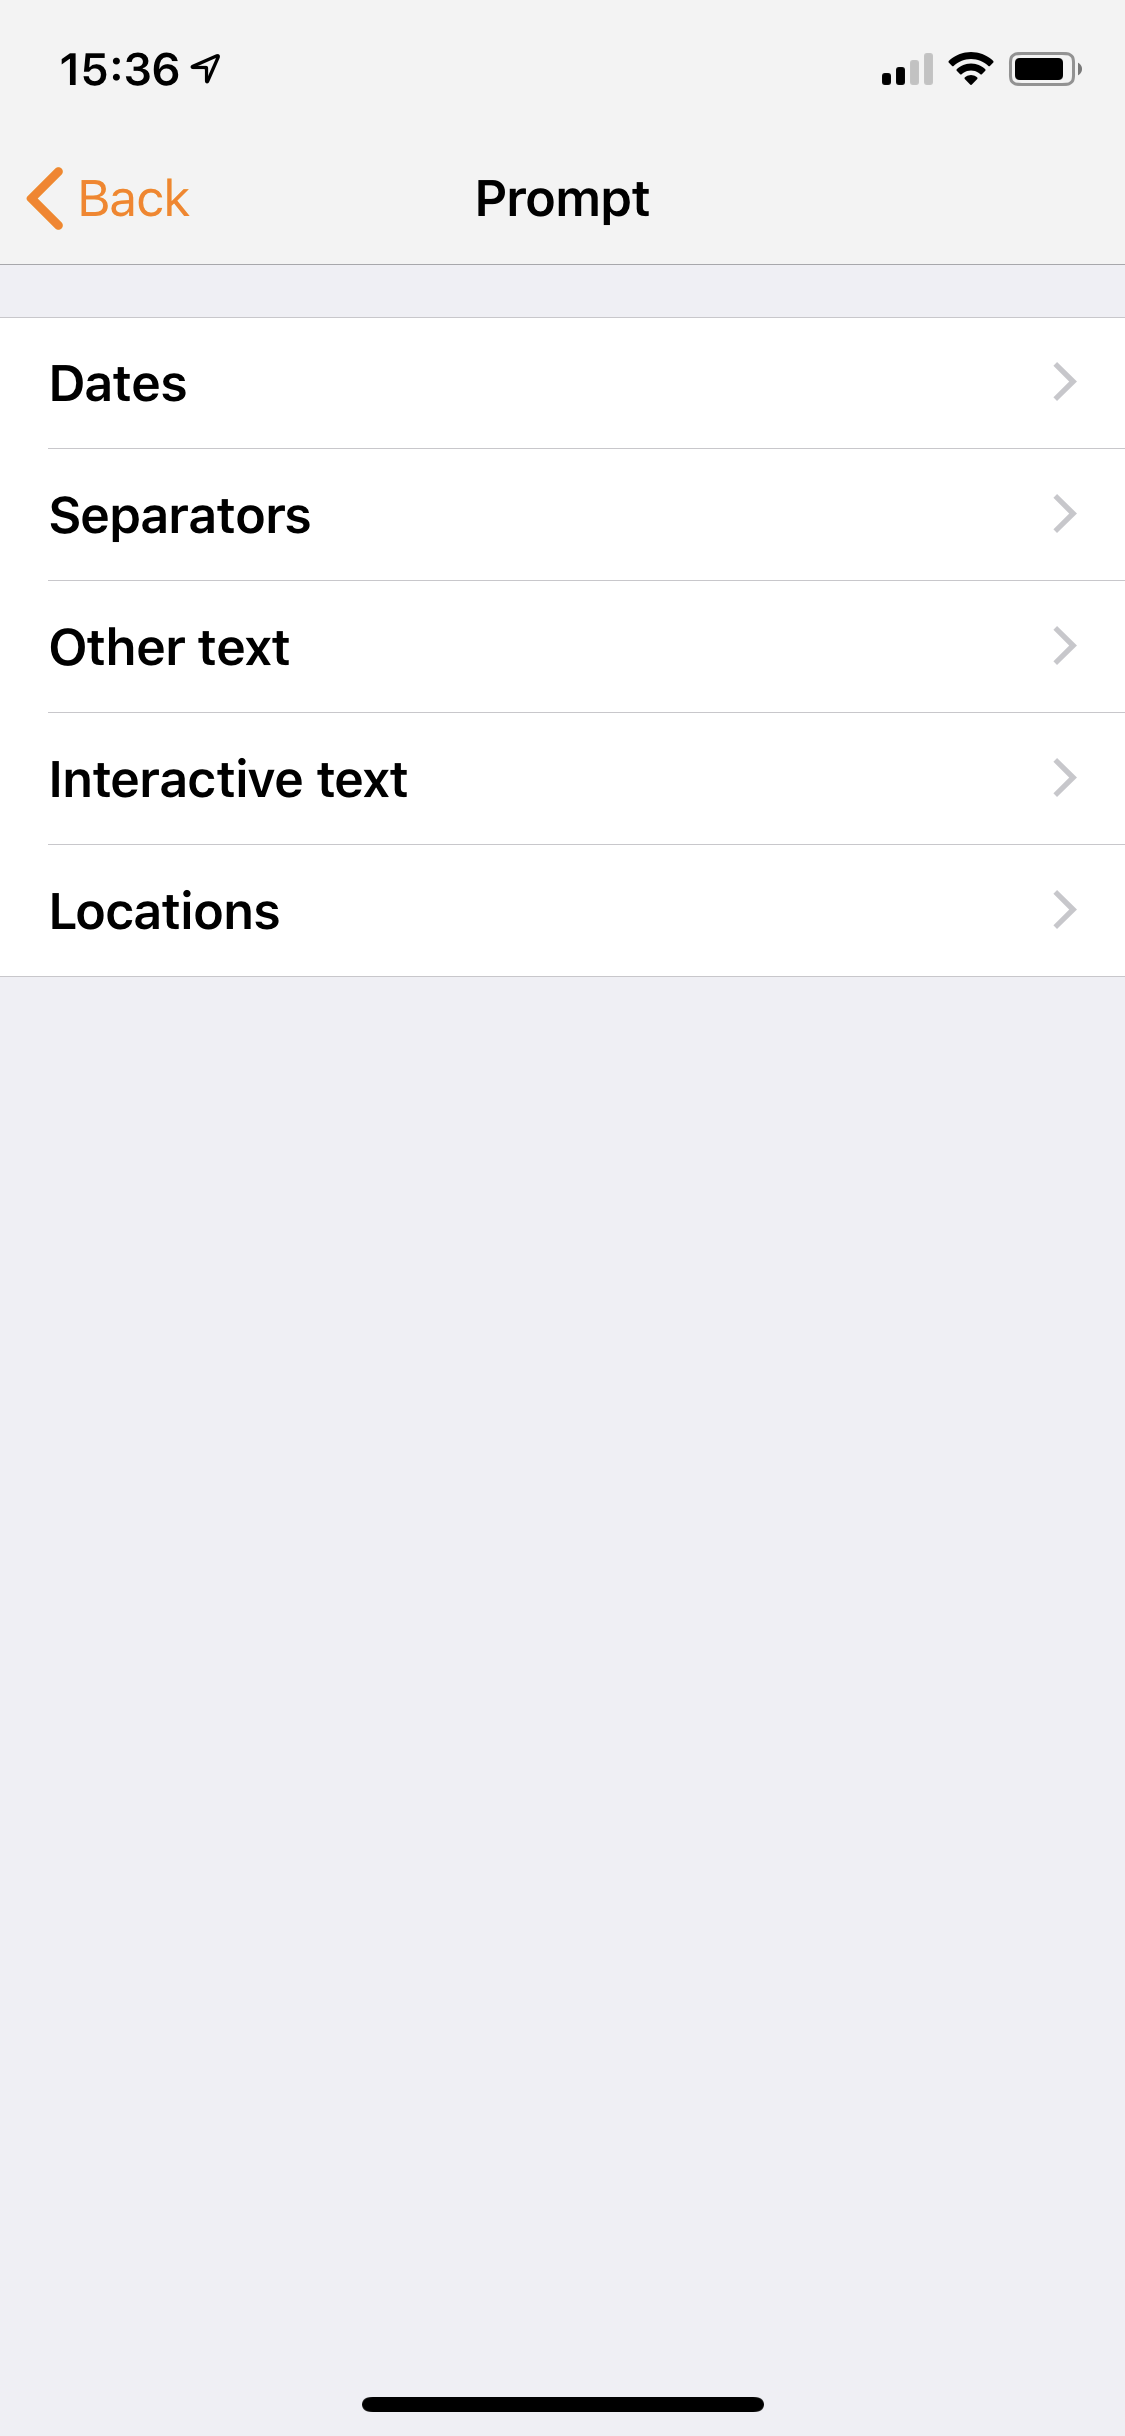 The interactive text category